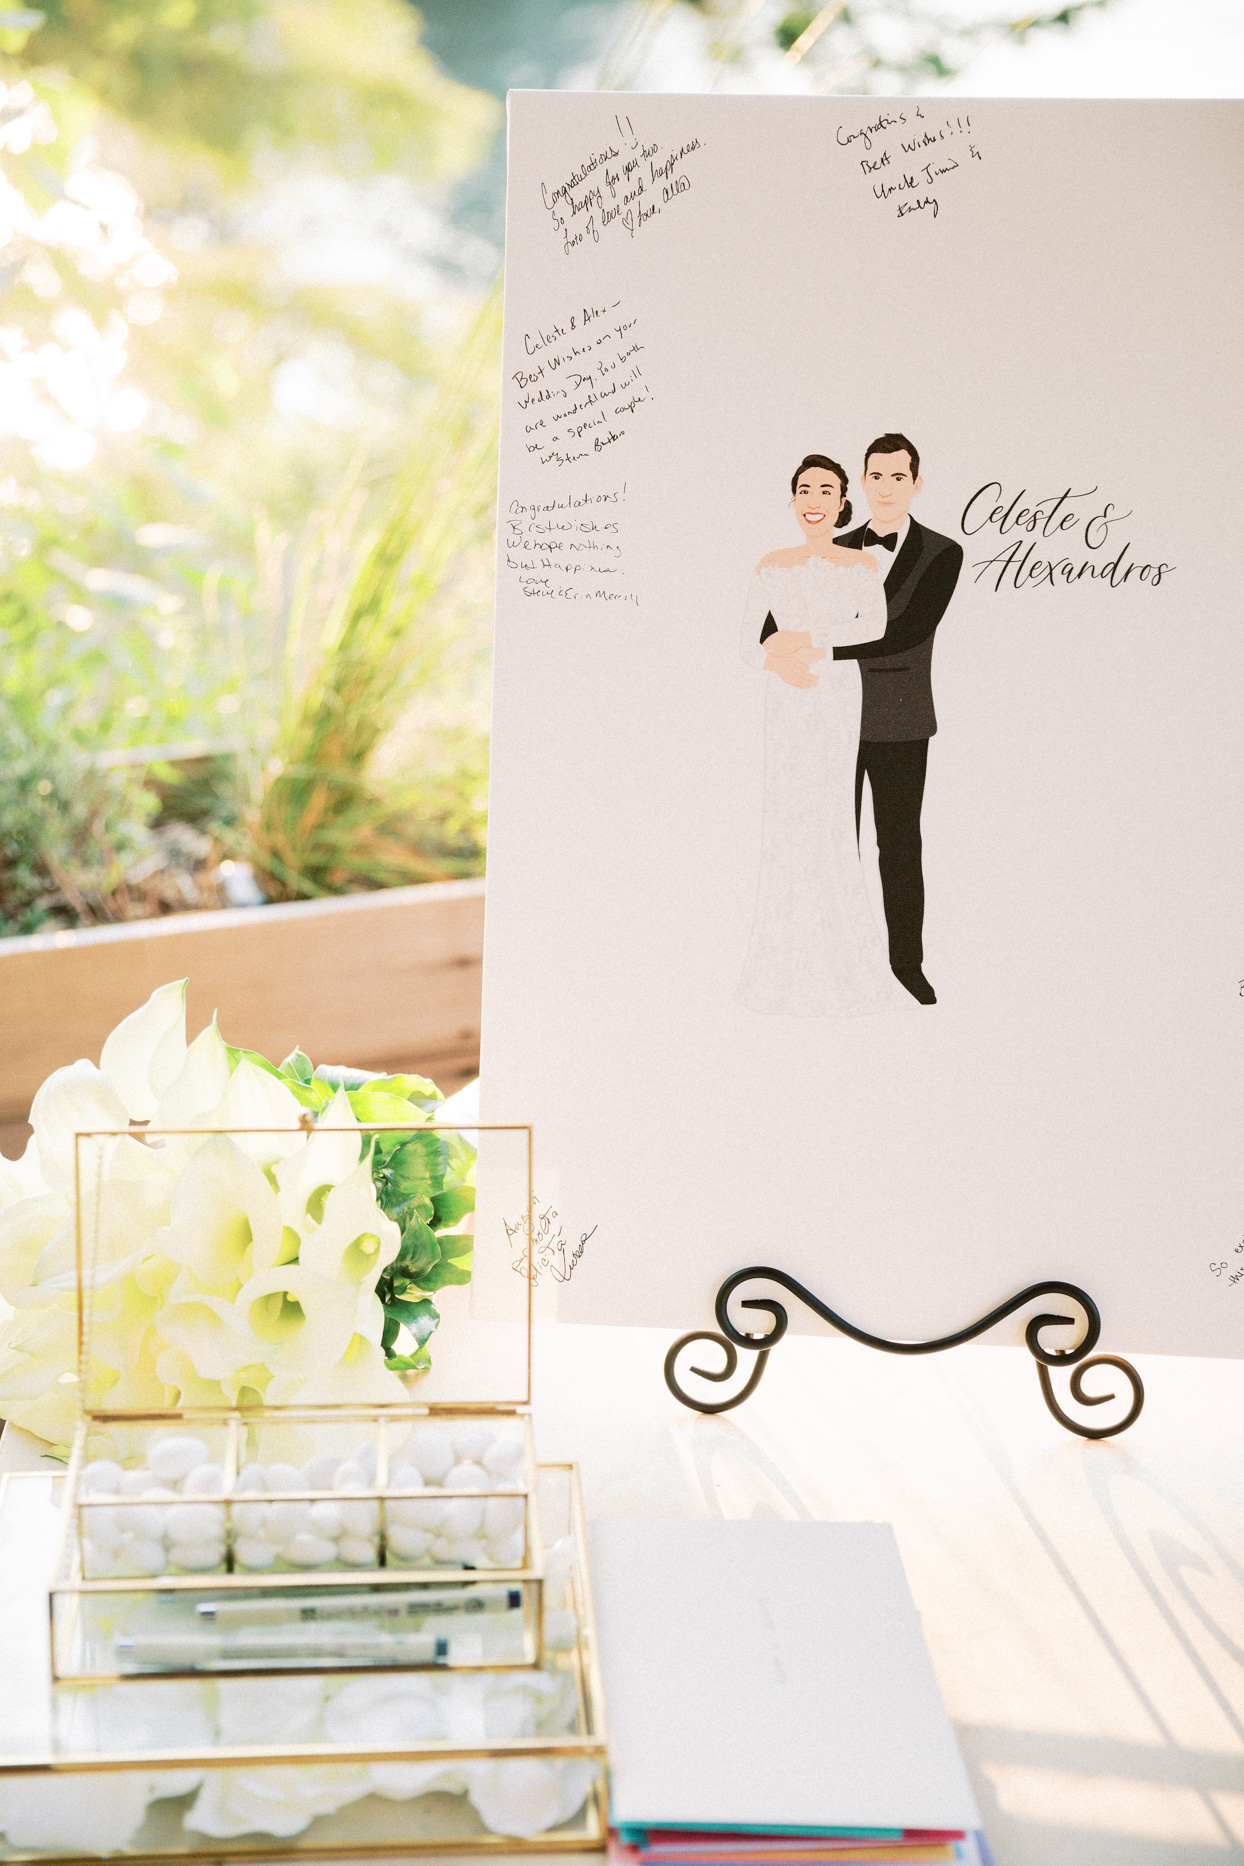 illustrated wedding sign with signatures